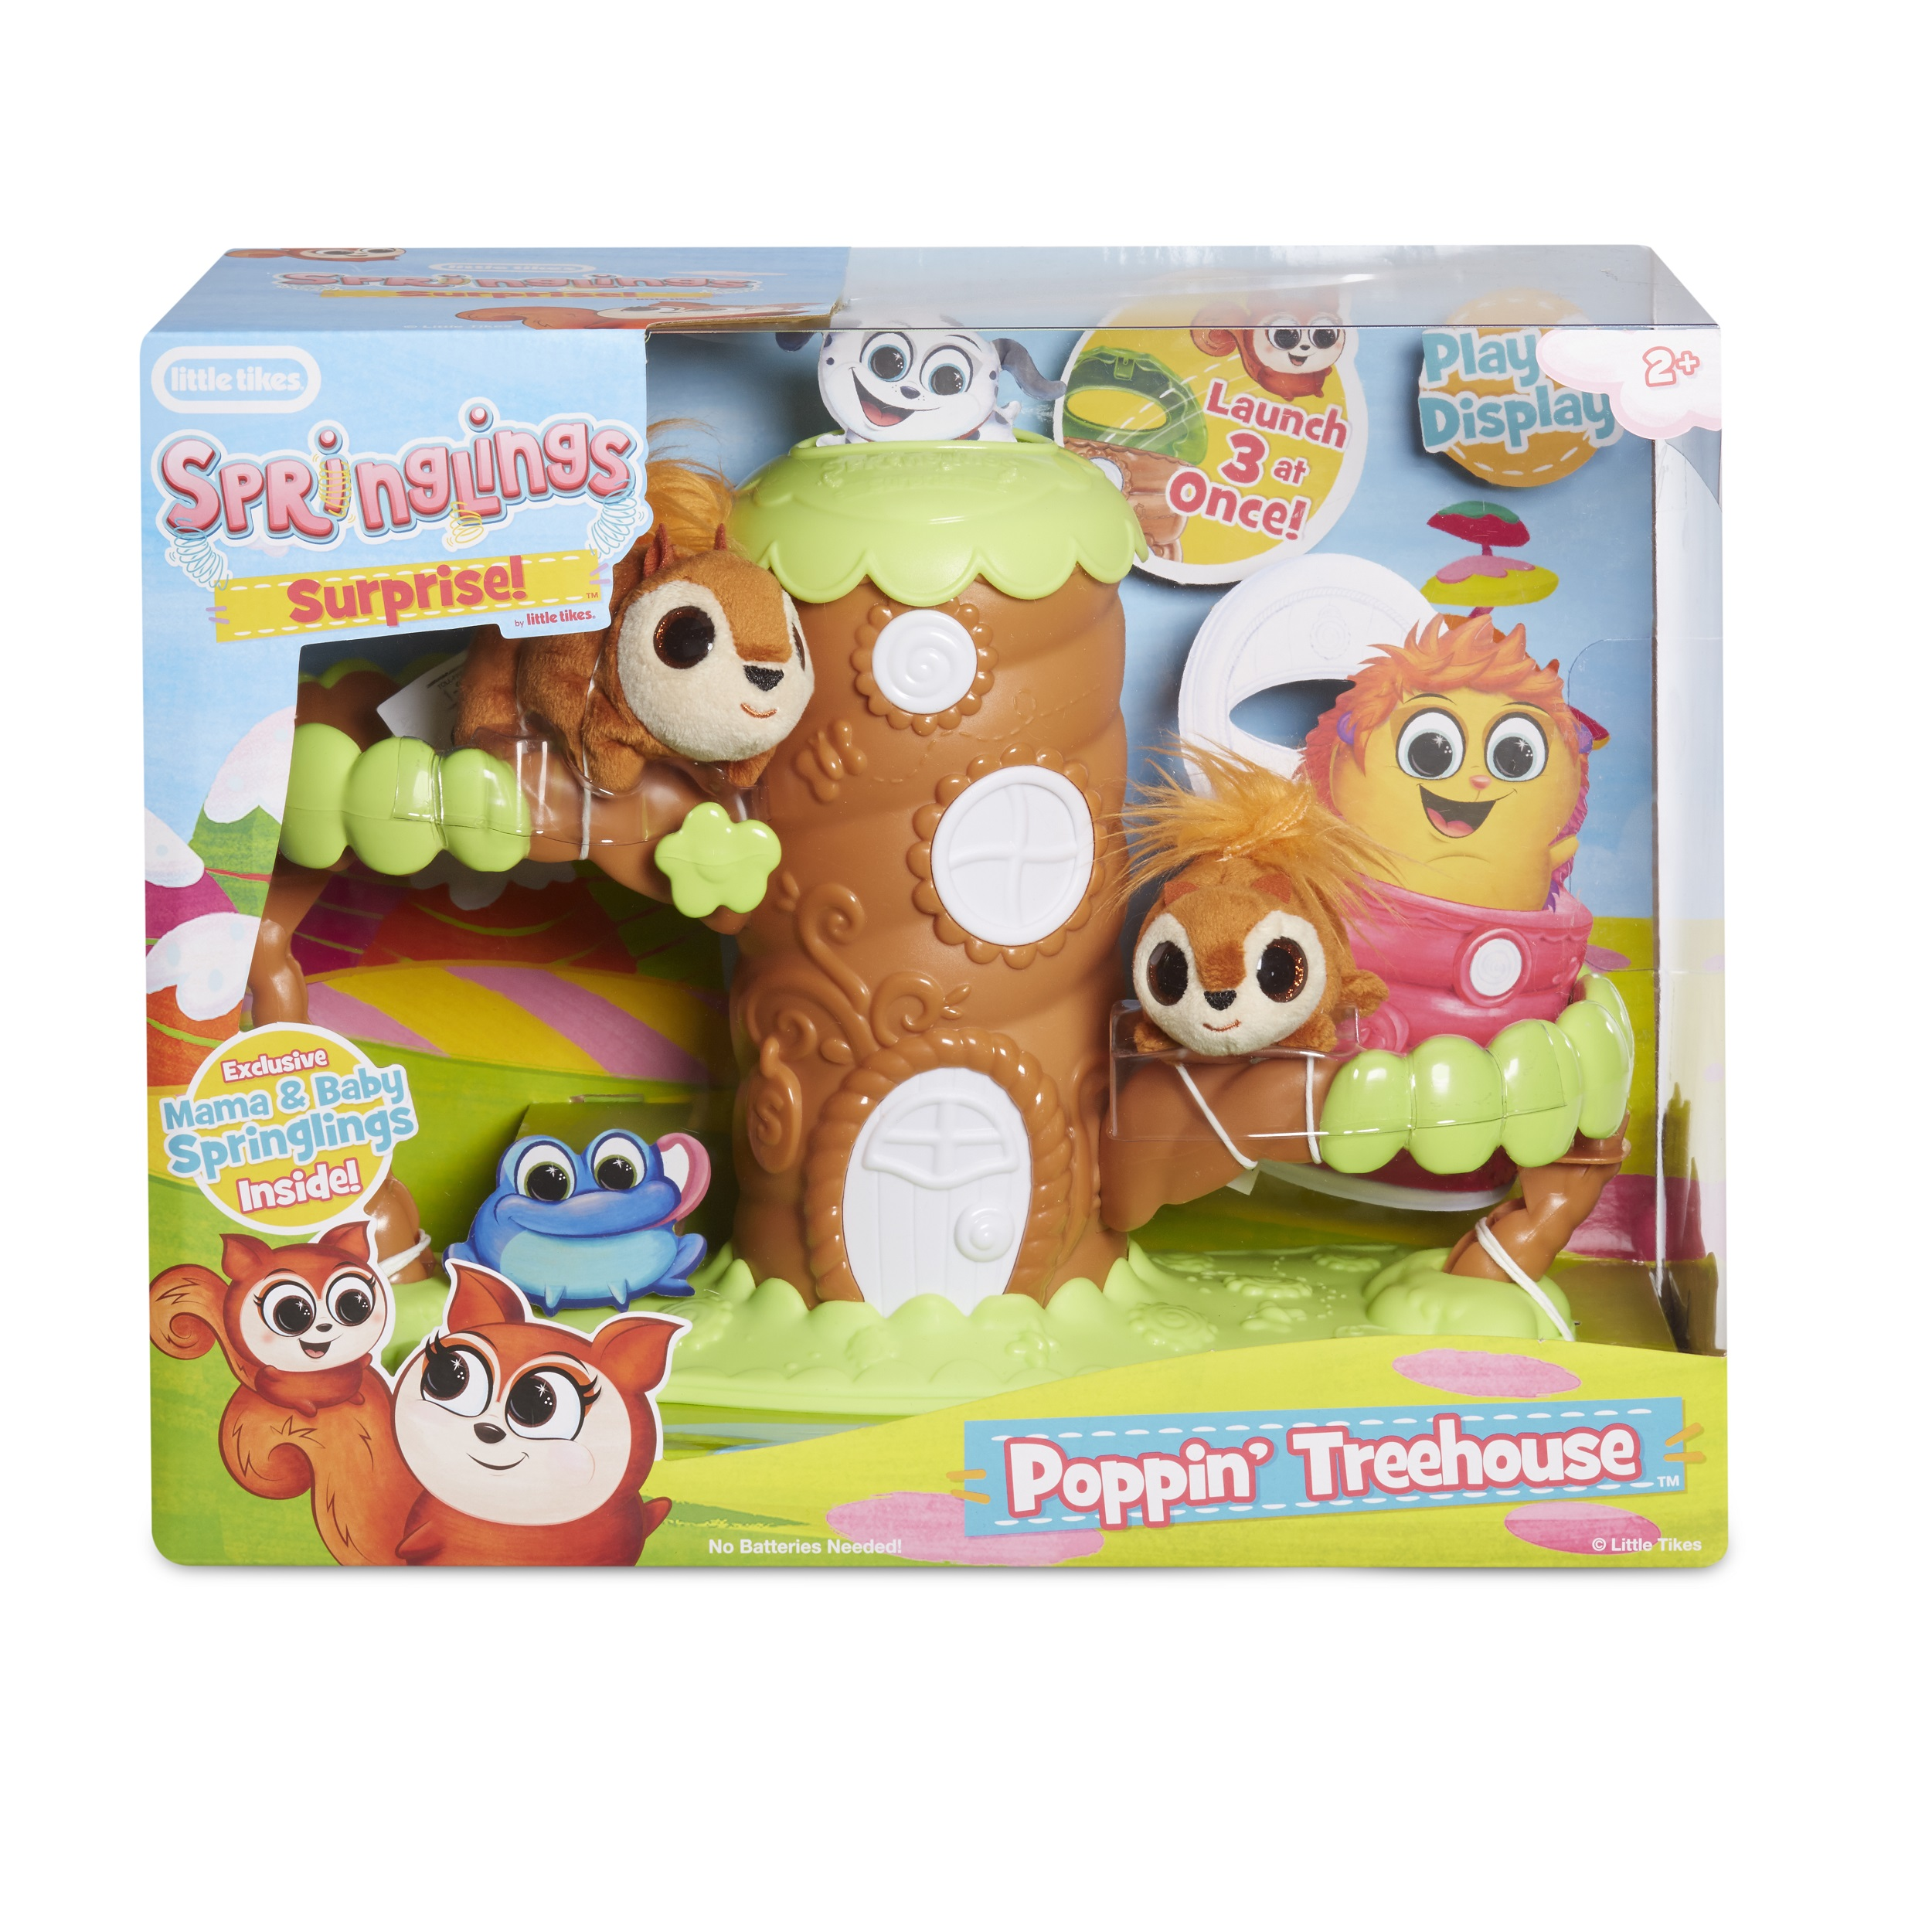 Little Tikes Springlings Surprise Poppin' Treehouse Set with Two Plush Pets